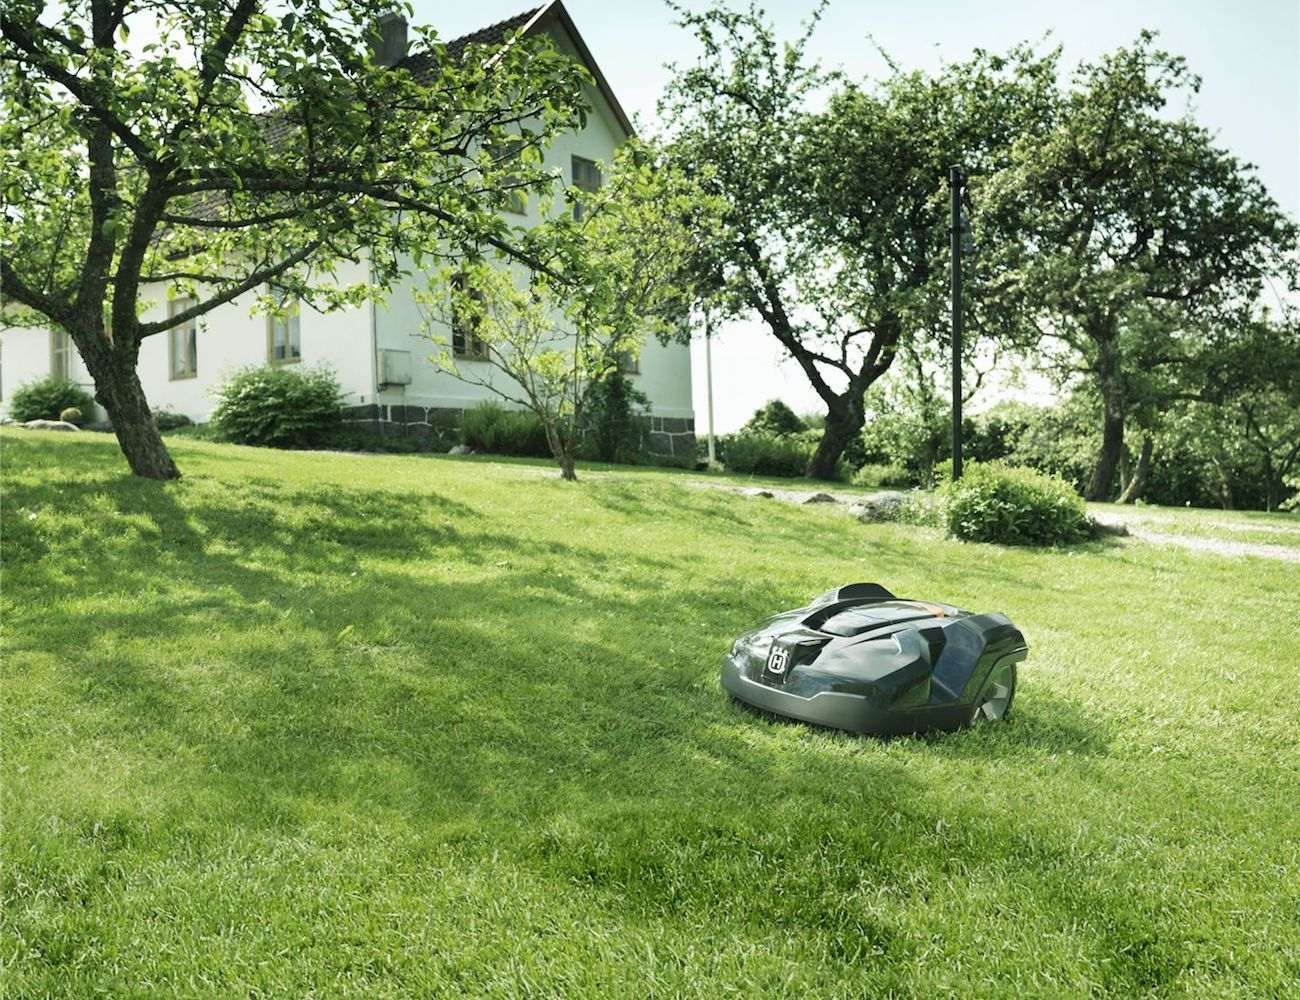 Husqvarna 450x Automower Lawnmower 187 Gadget Flow